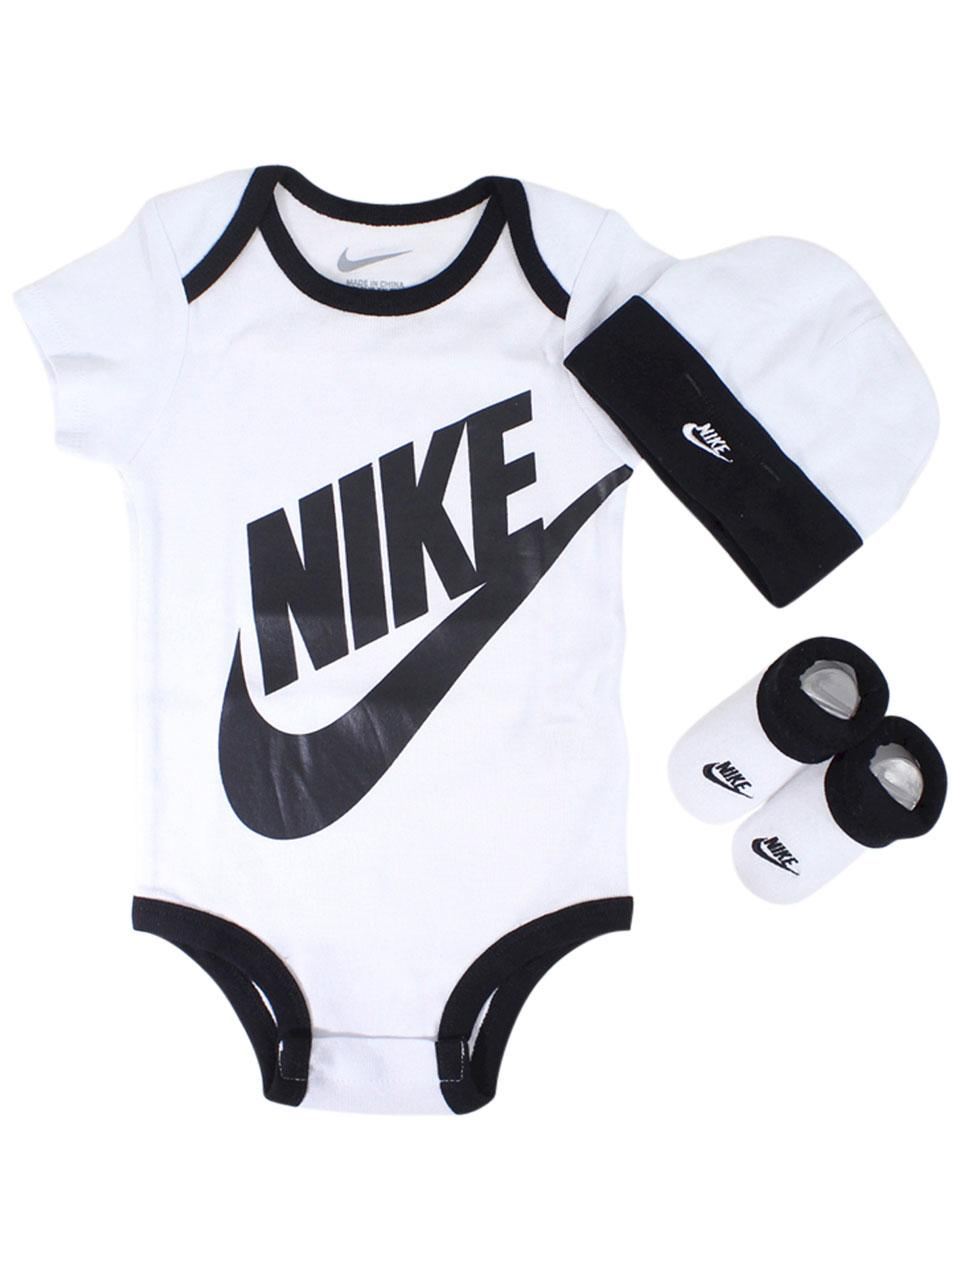 ad67ccff74834 Nike Infant Boy s Futura 3-Piece Set (Hat